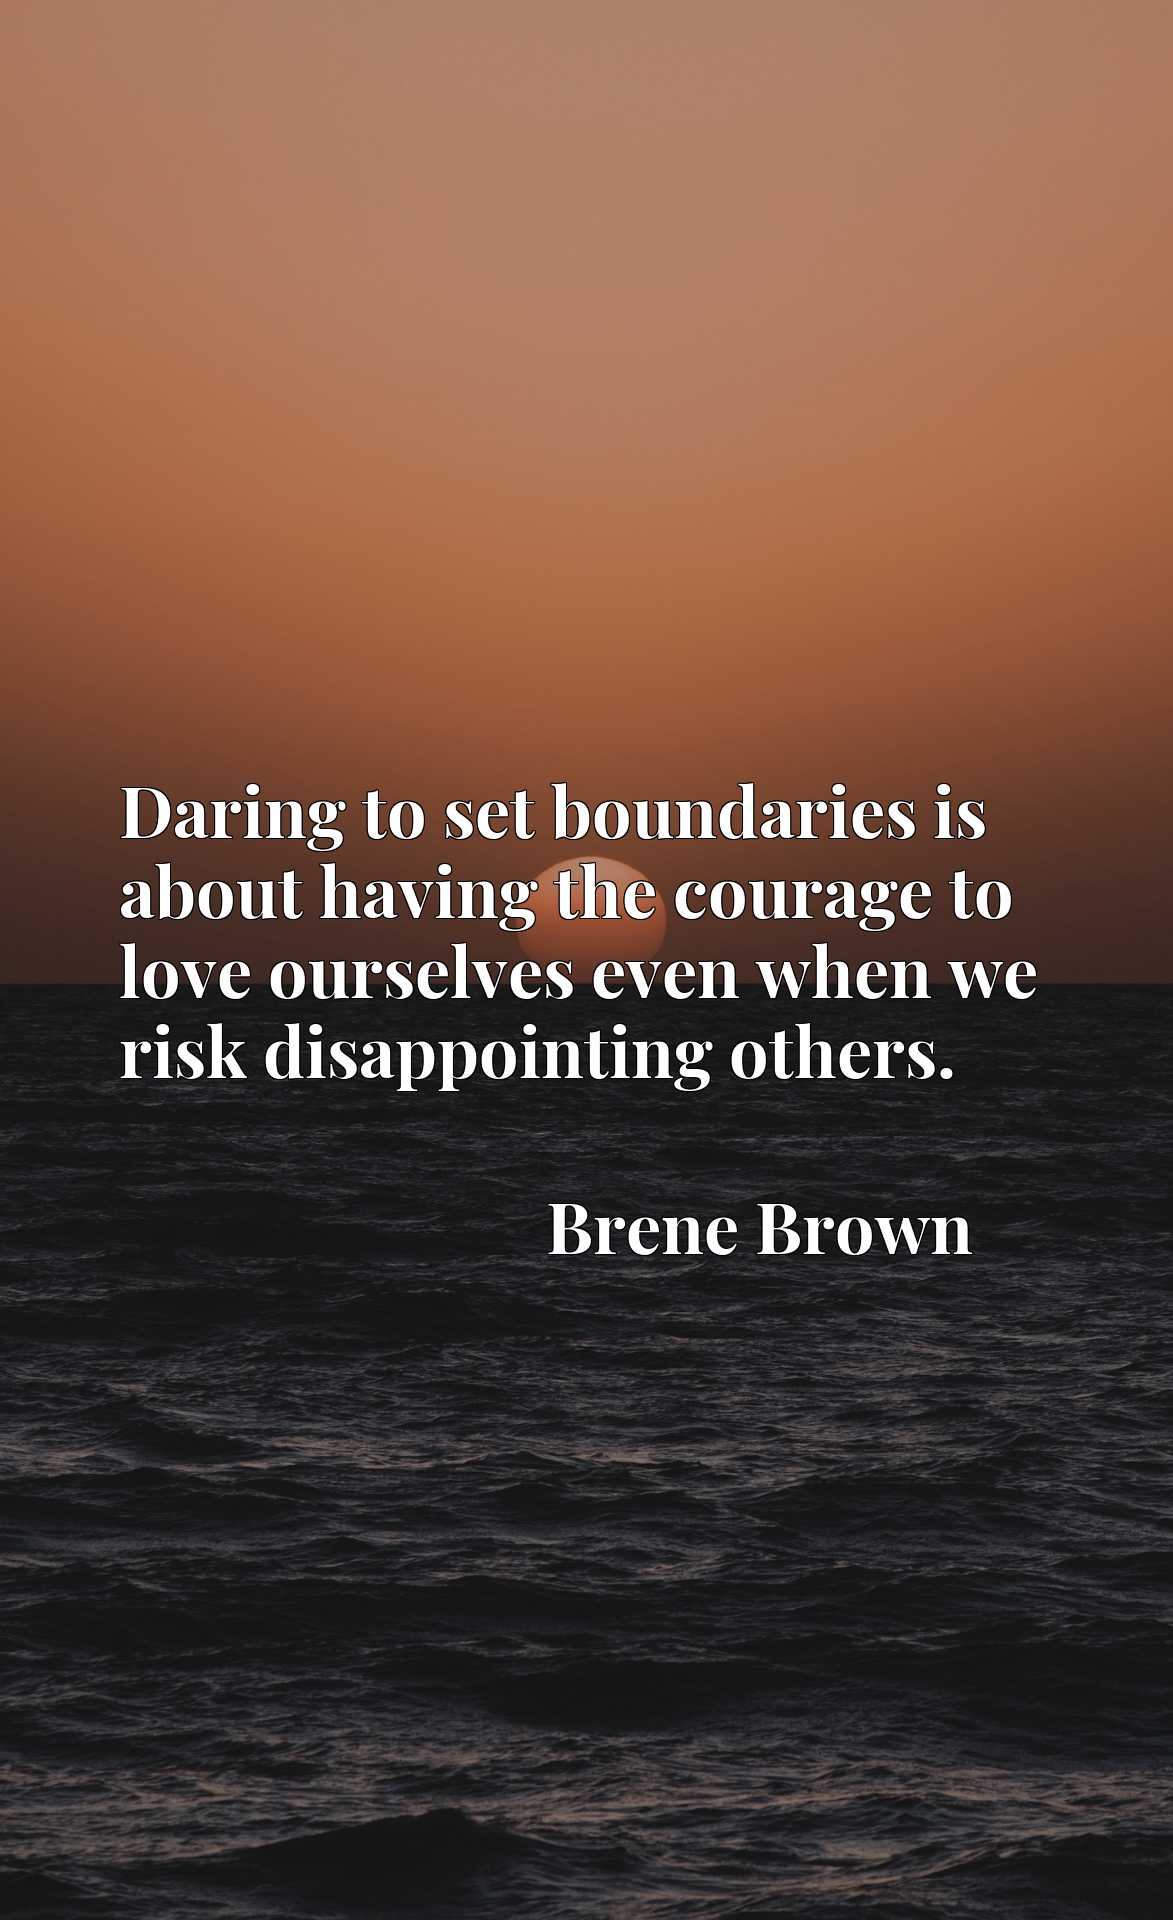 Daring to set boundaries is about having the courage to love ourselves even when we risk disappointing others.